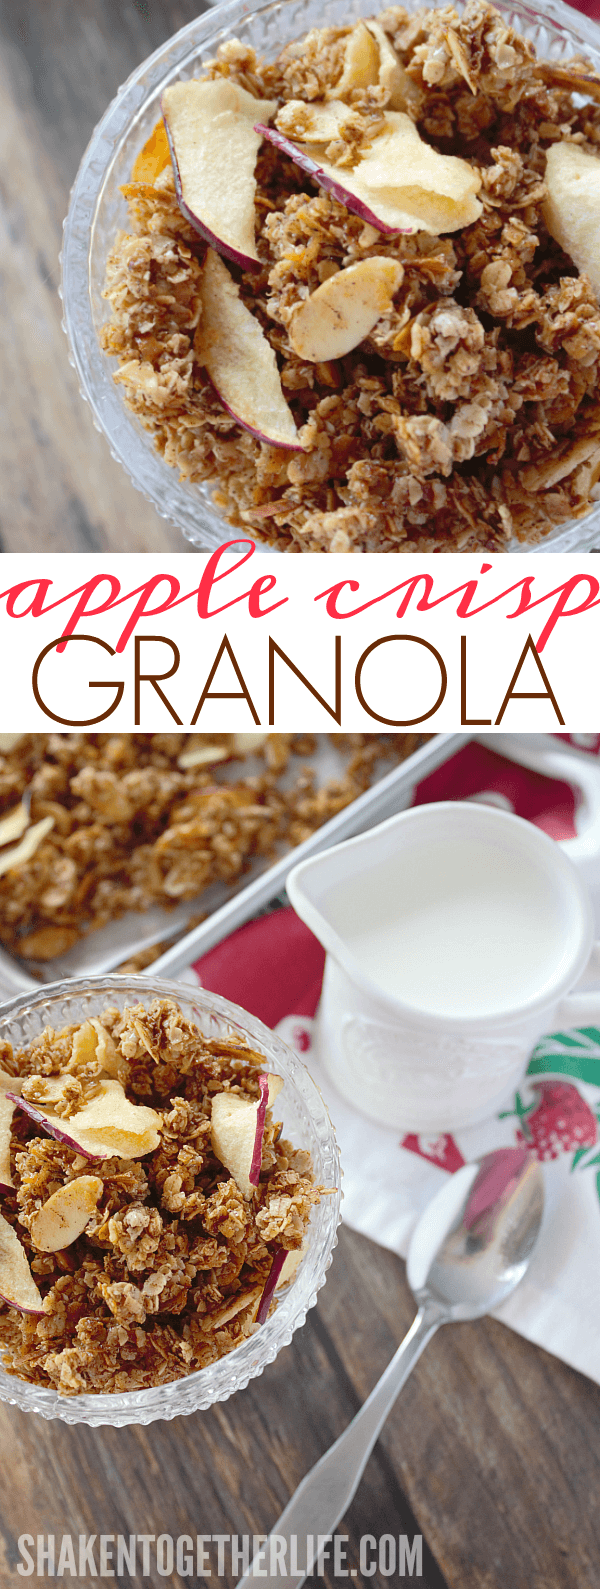 Homemade Apple Crisp Granola - a big ol' pan of toasted oats, almonds and the warm flavors of apple crisp!